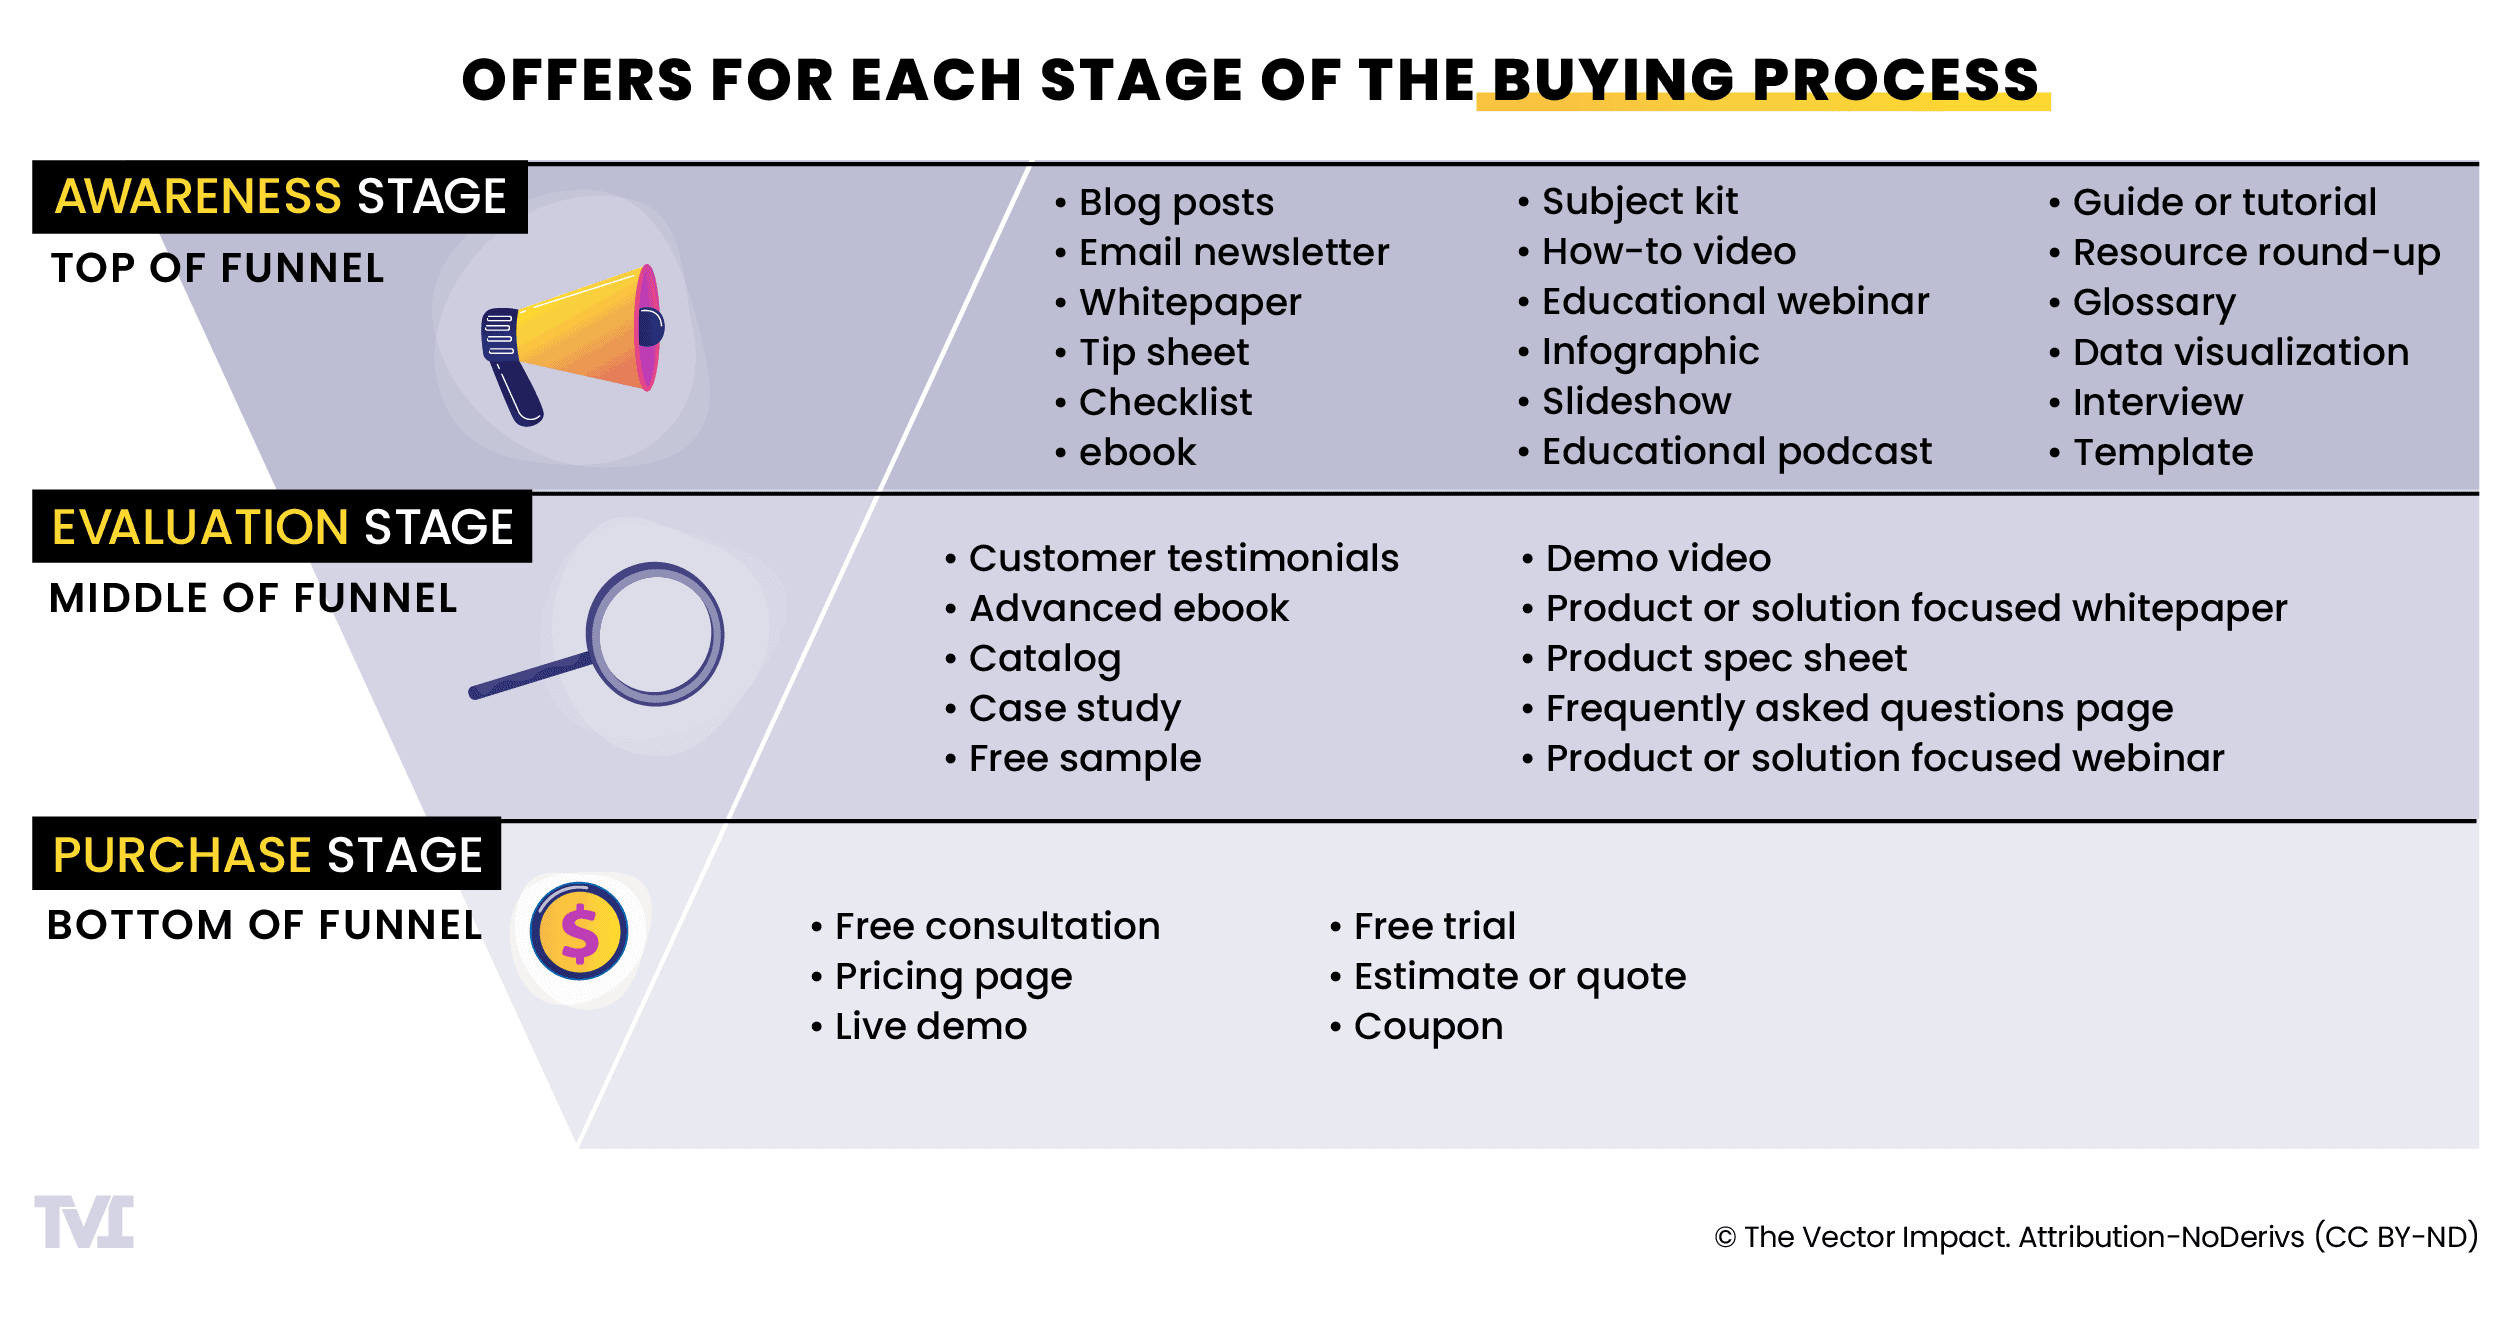 Funnel graphic showing offers for each stage of the buying process (awareness, evaluation, and purchase stages)